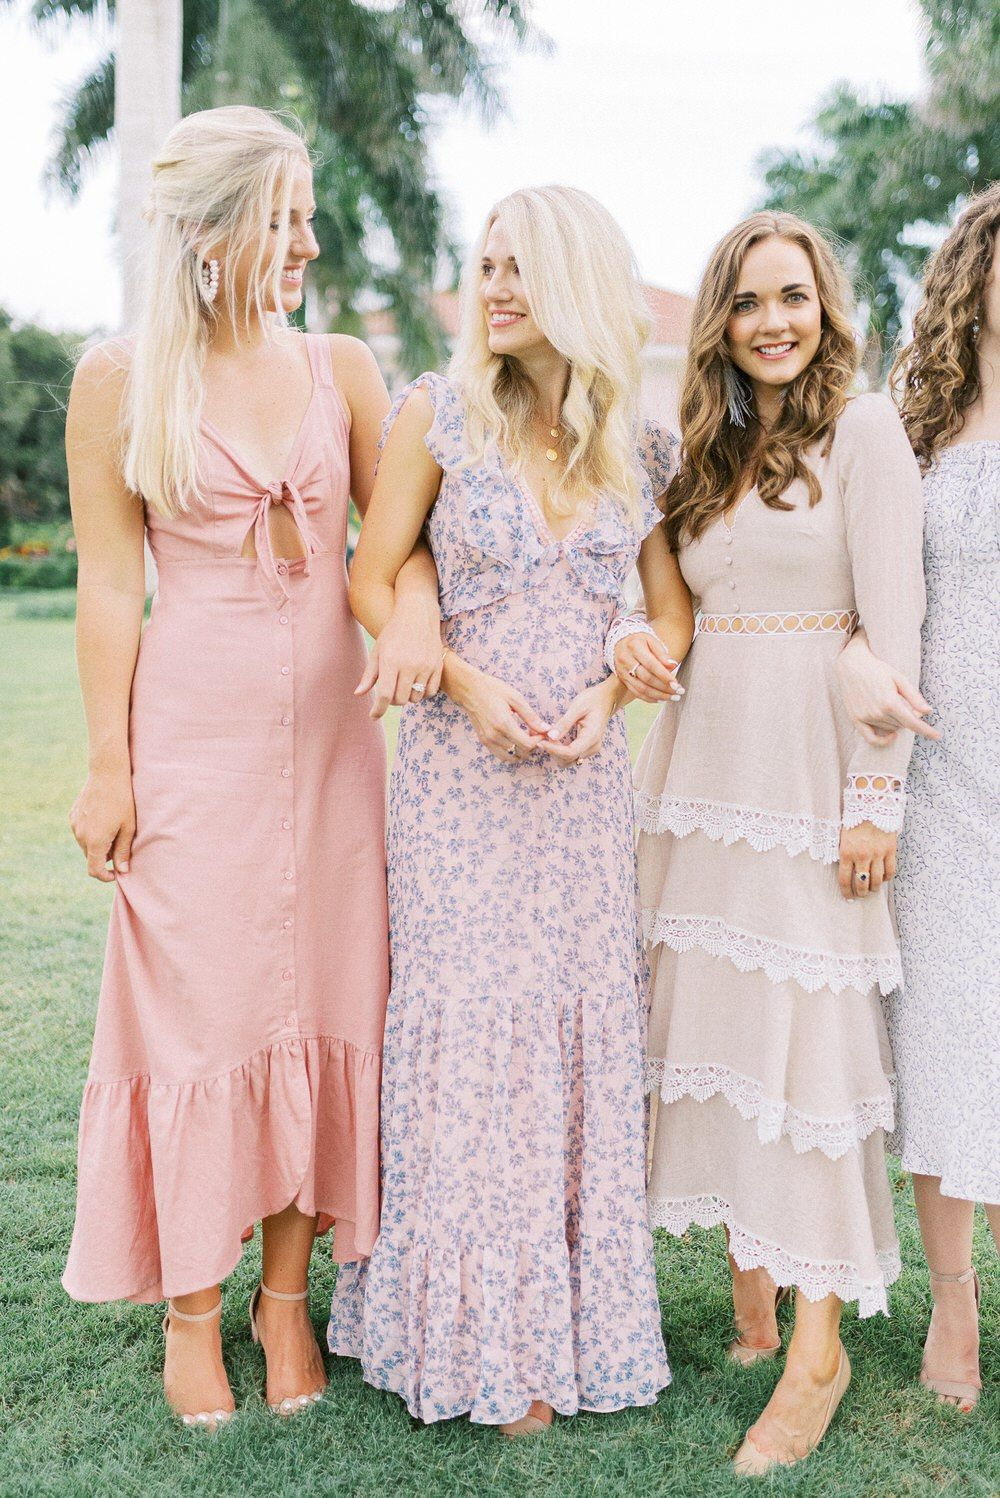 What Should You Wear To A Bridal Shower As A Guest Dress For The Wedding Bridal Shower Attire Bridal Shower Guest Outfit Bridal Shower Dress [ 1147 x 768 Pixel ]